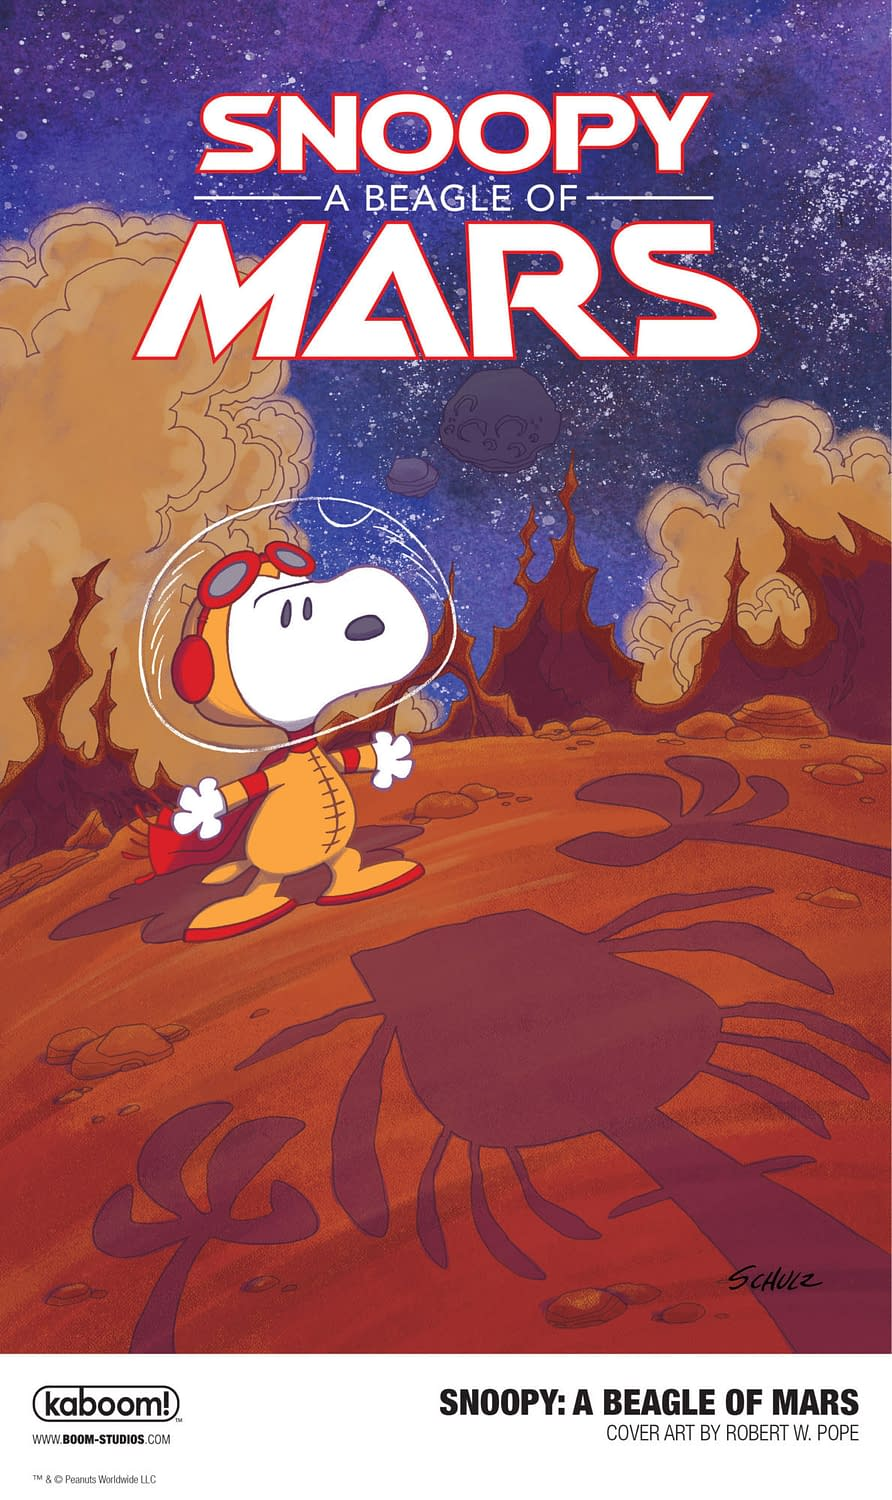 Snoopy: A Beagle of Mars OGN Brings Snoopy to Space